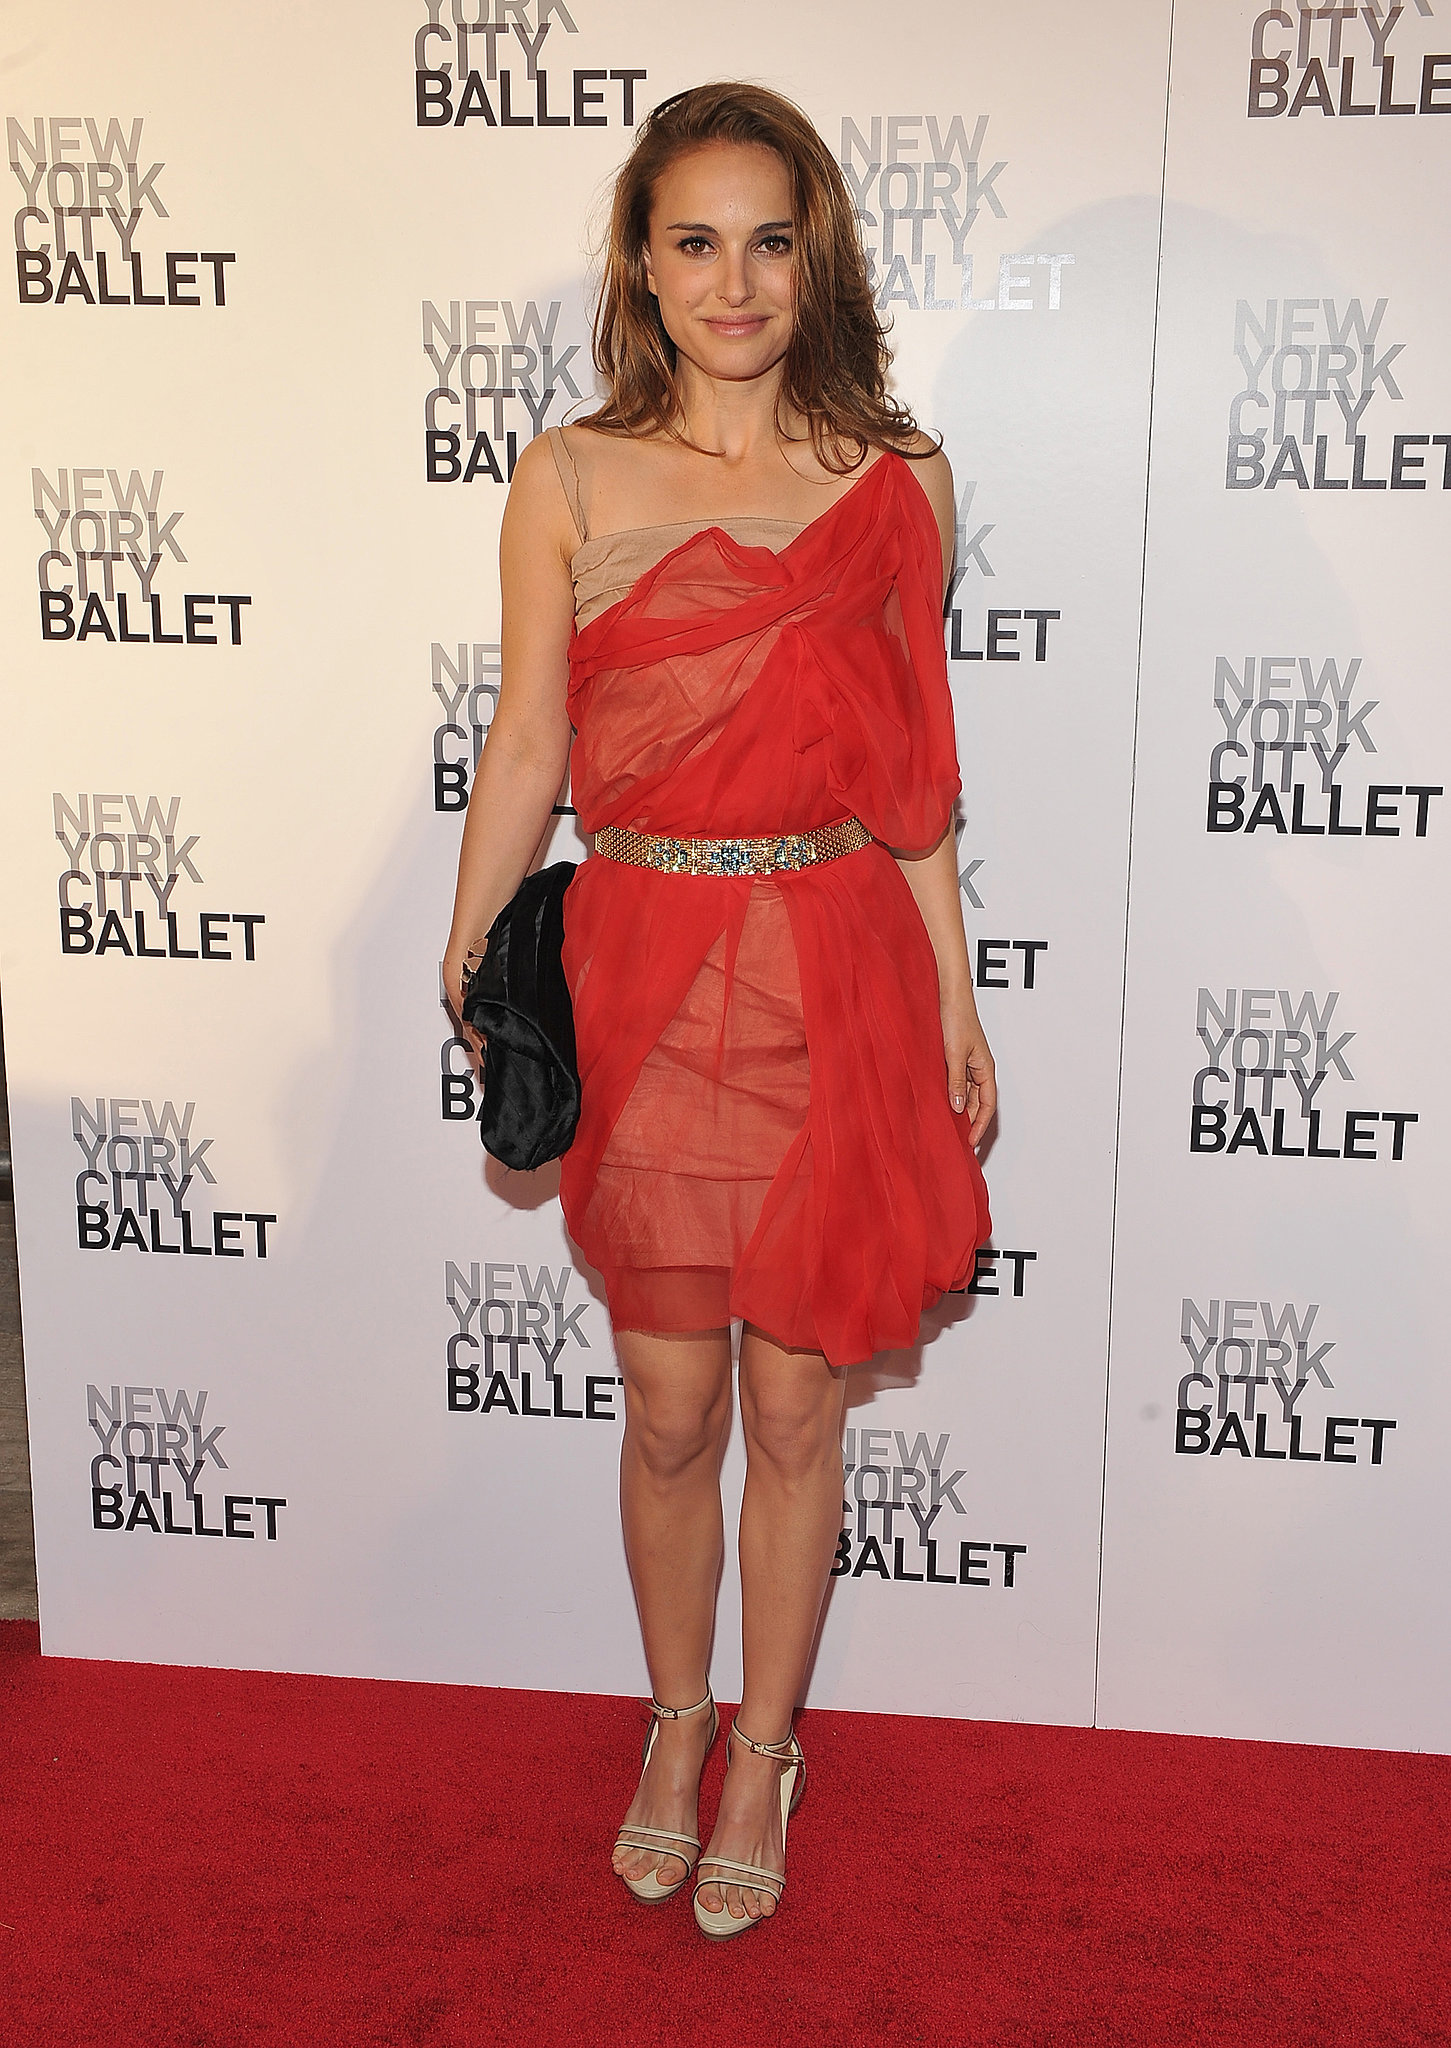 Natalie portman in a red mesh dress at the 2012 new york city ballet